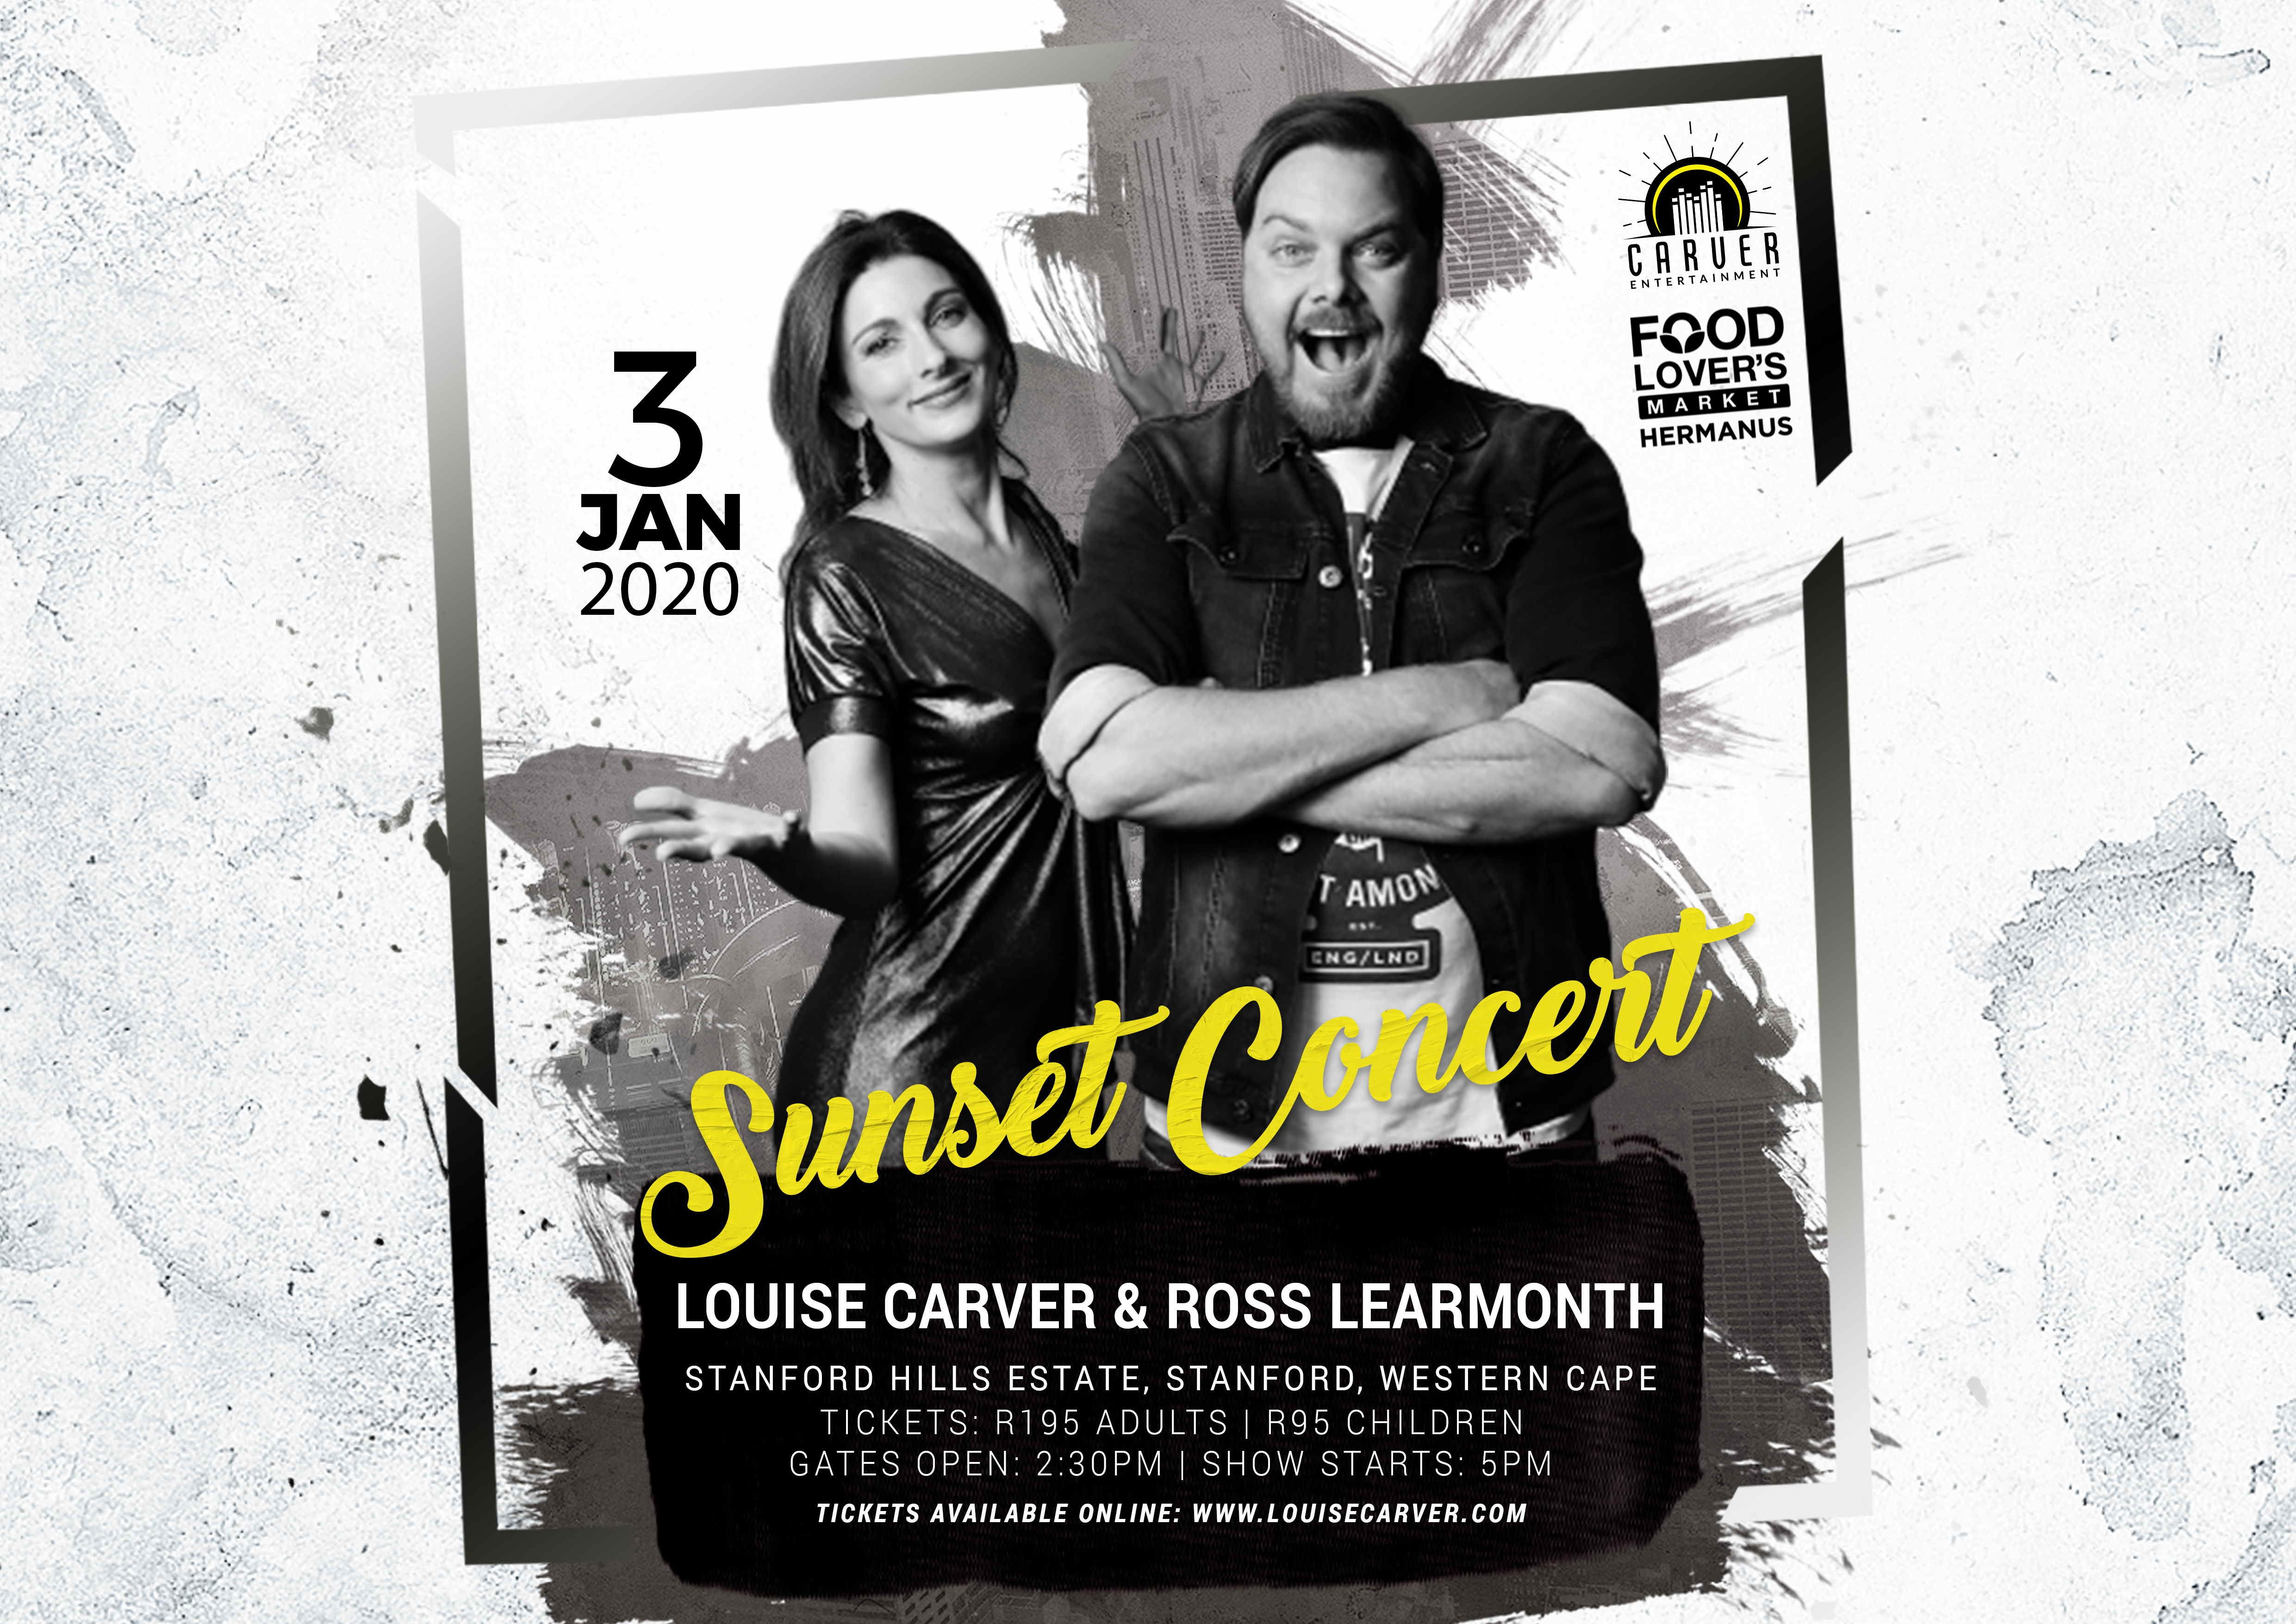 Louise Carver and Ross Learmonth at Stanford Hills Estate